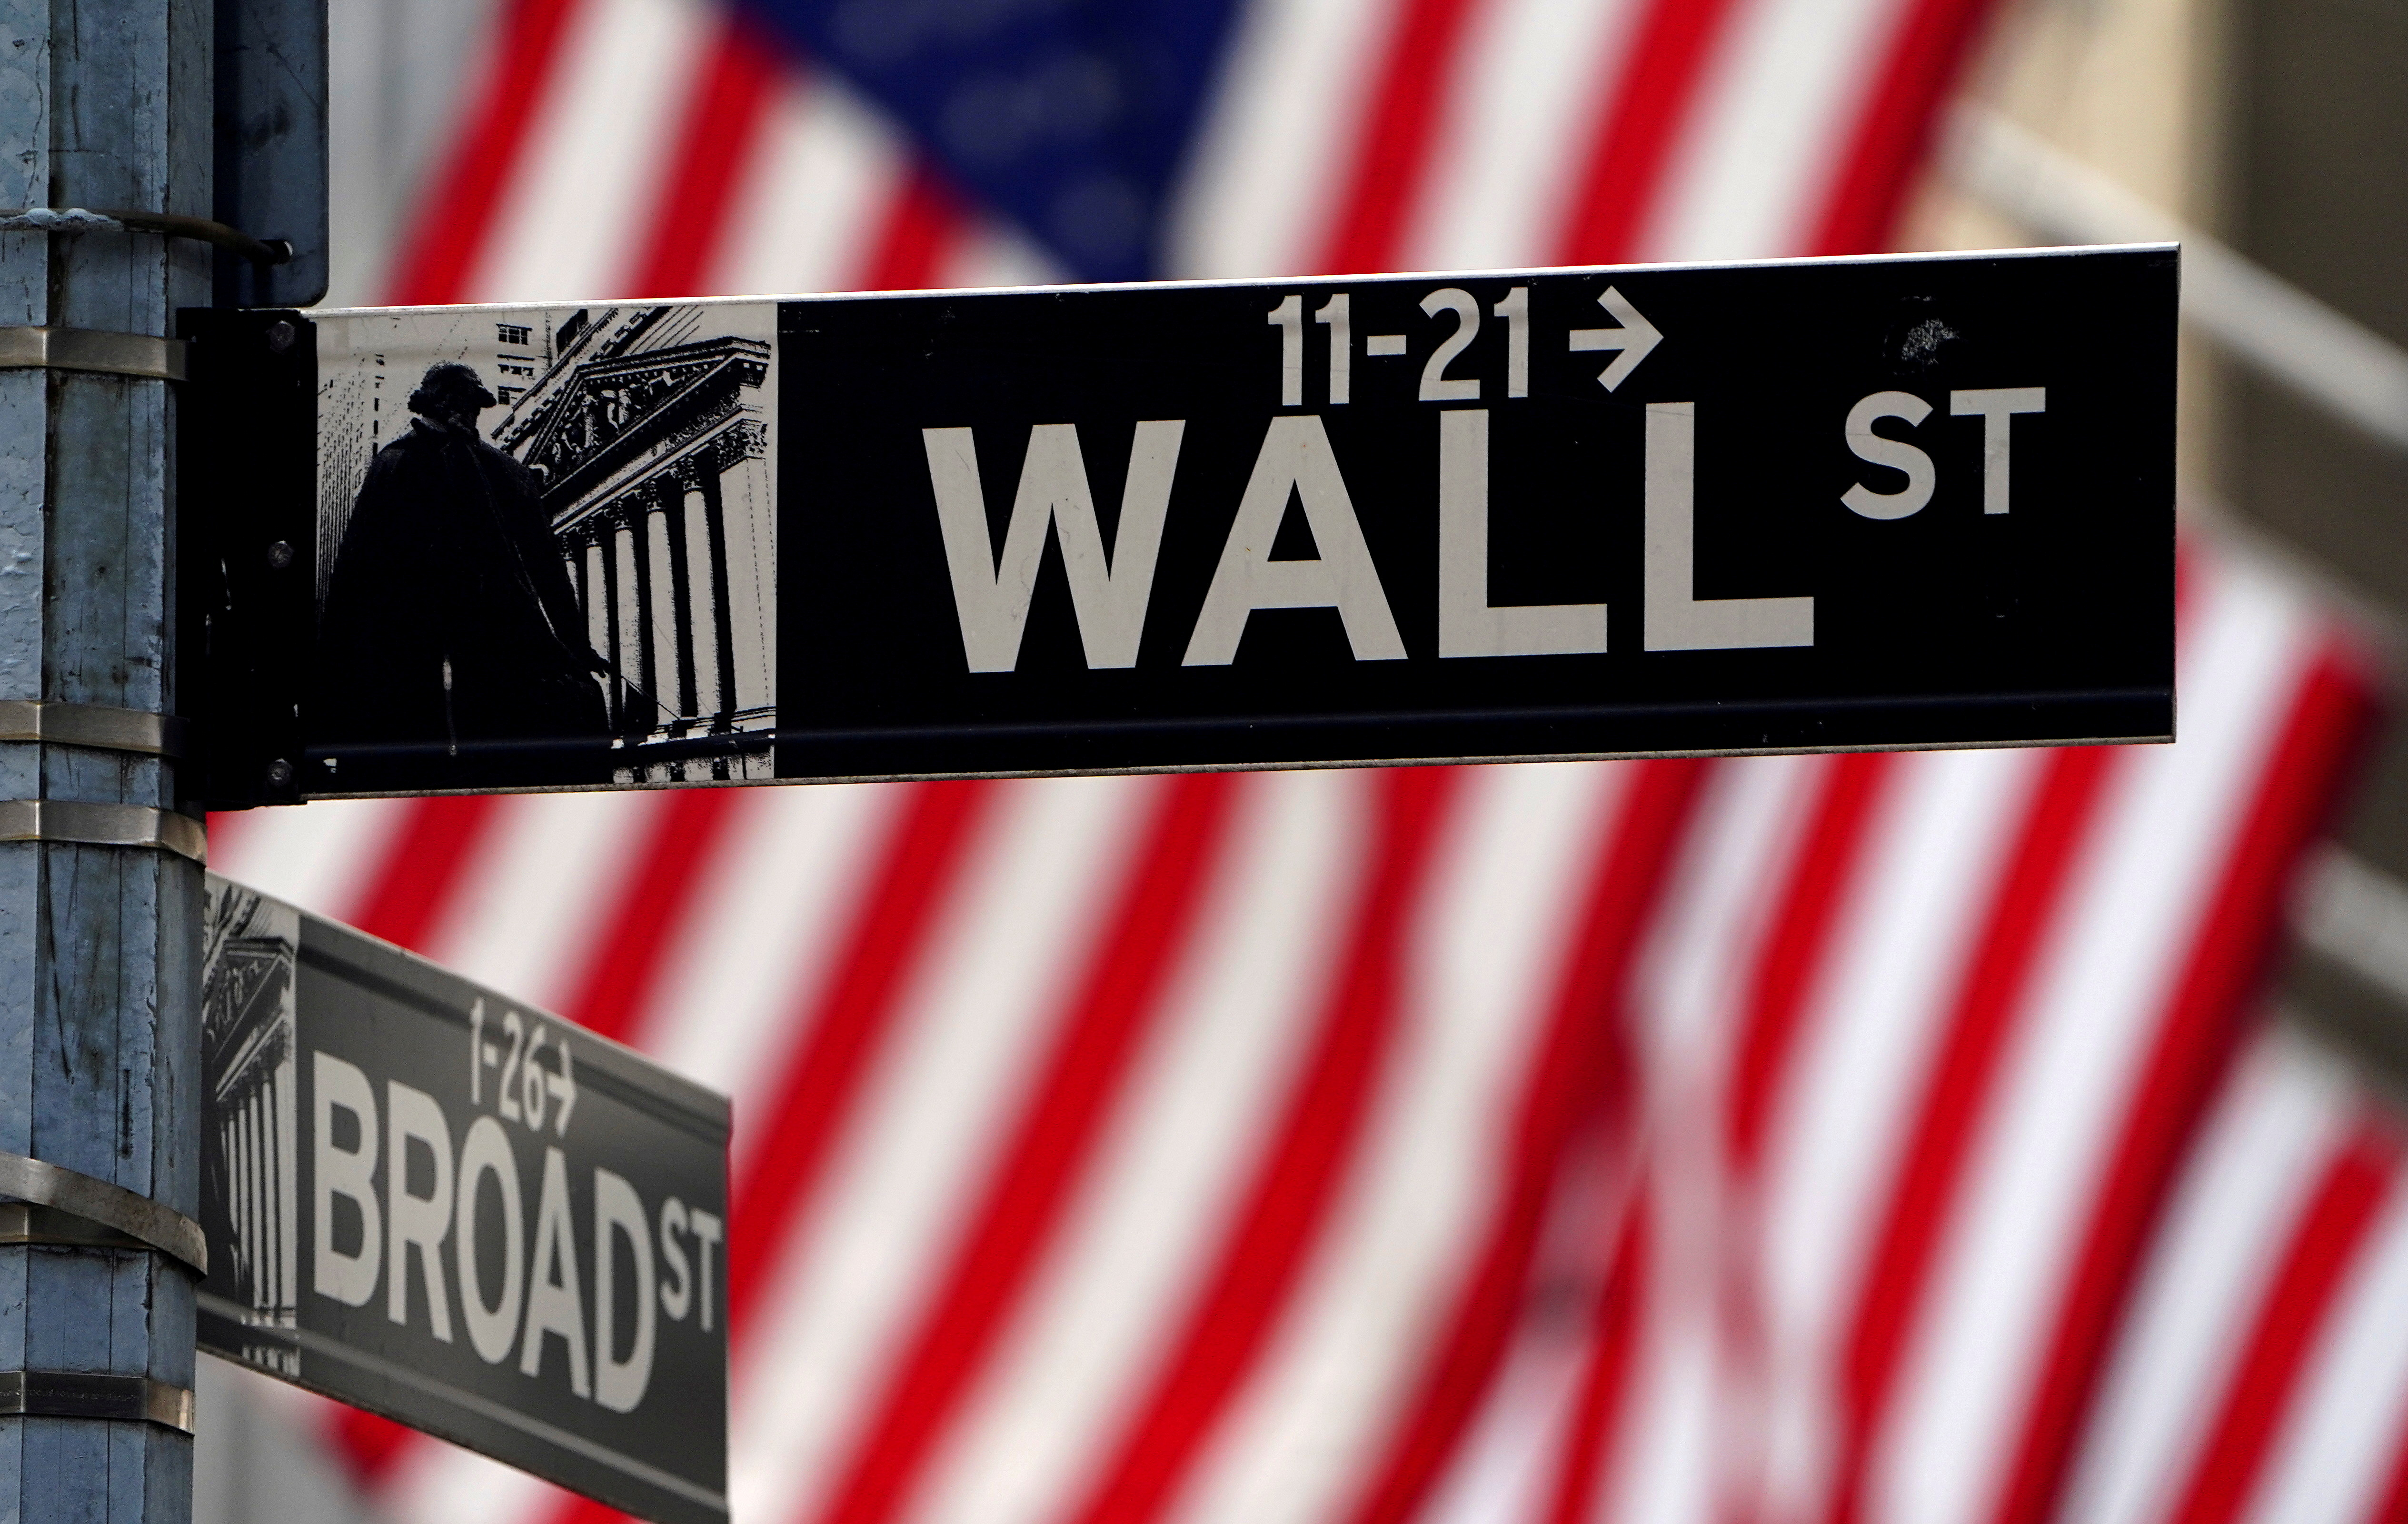 A Wall Street sign is pictured outside the New York Stock Exchange in the Manhattan borough of New York City, New York, U.S., April 16, 2021. REUTERS/Carlo Allegri